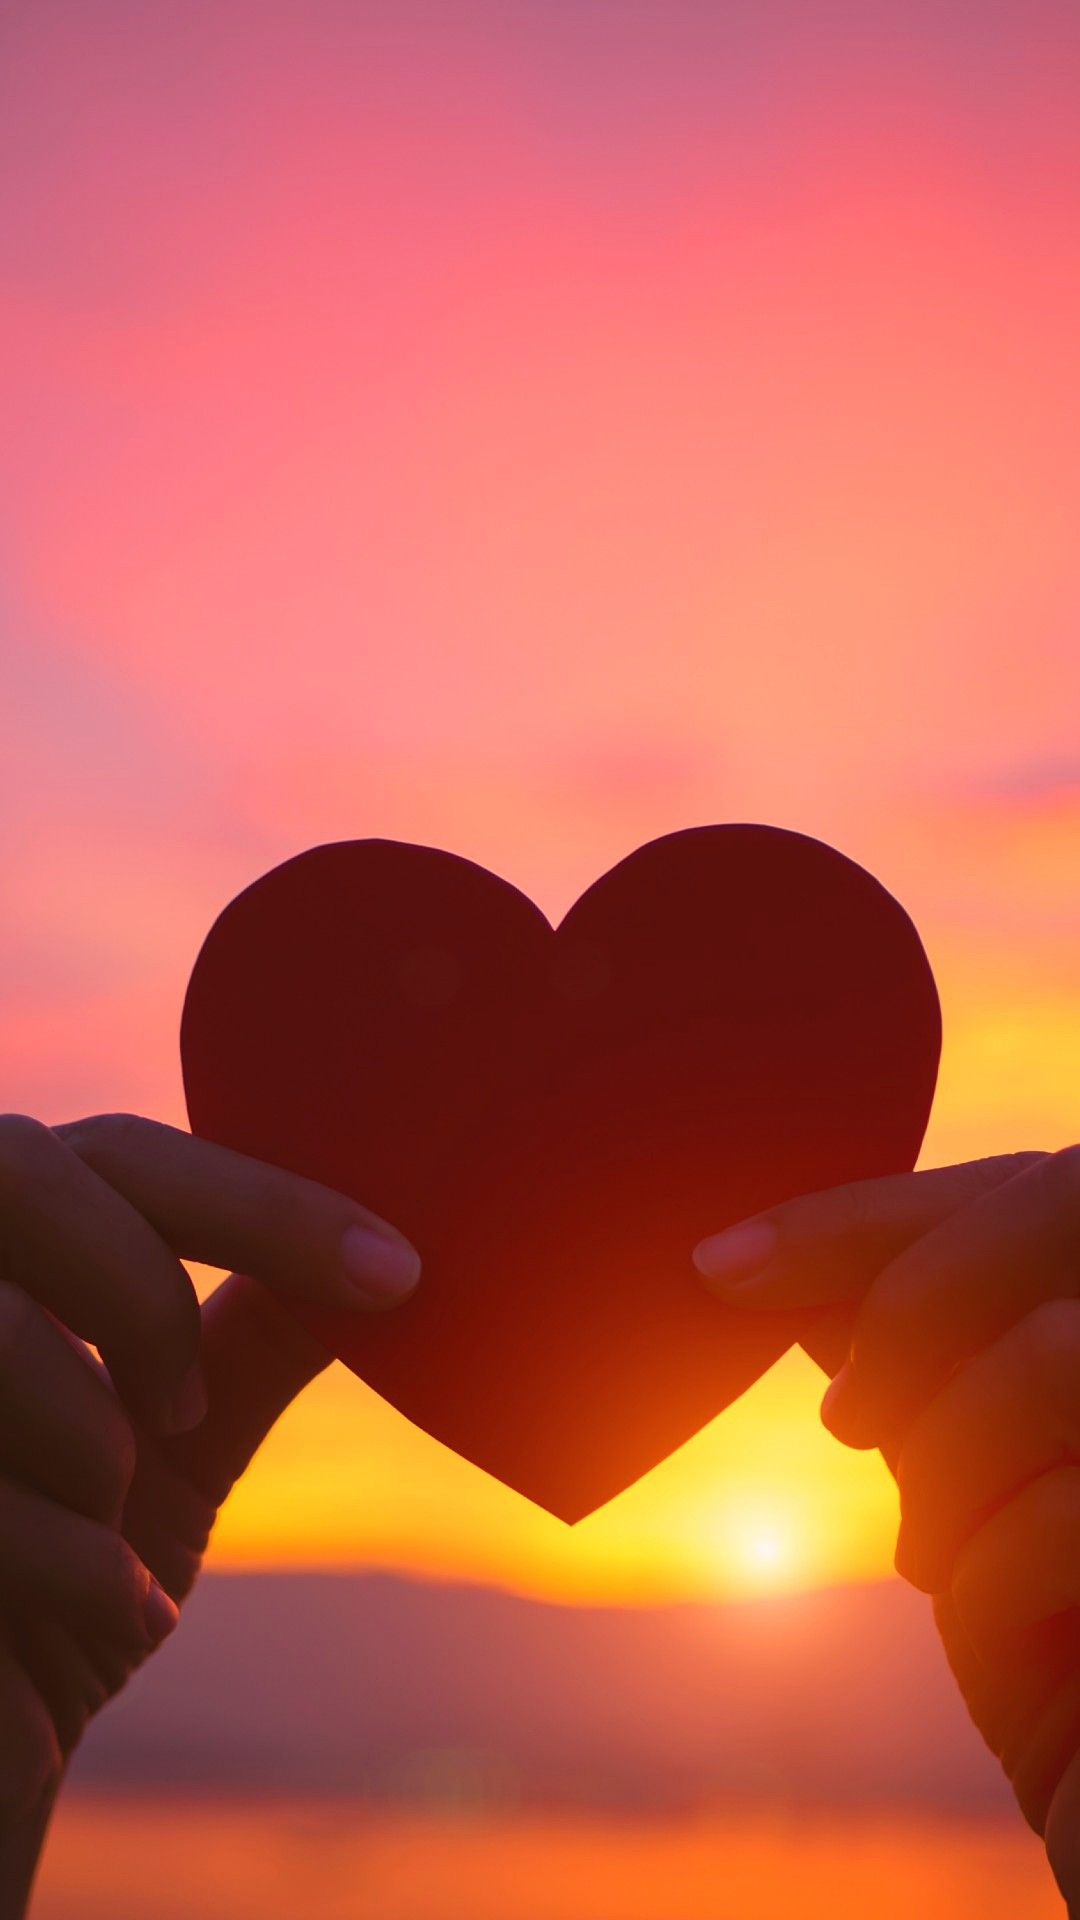 Heart At Sunset Love Wallpapers 1080x1920 Love Wallpaper Sunset Love Wallpaper